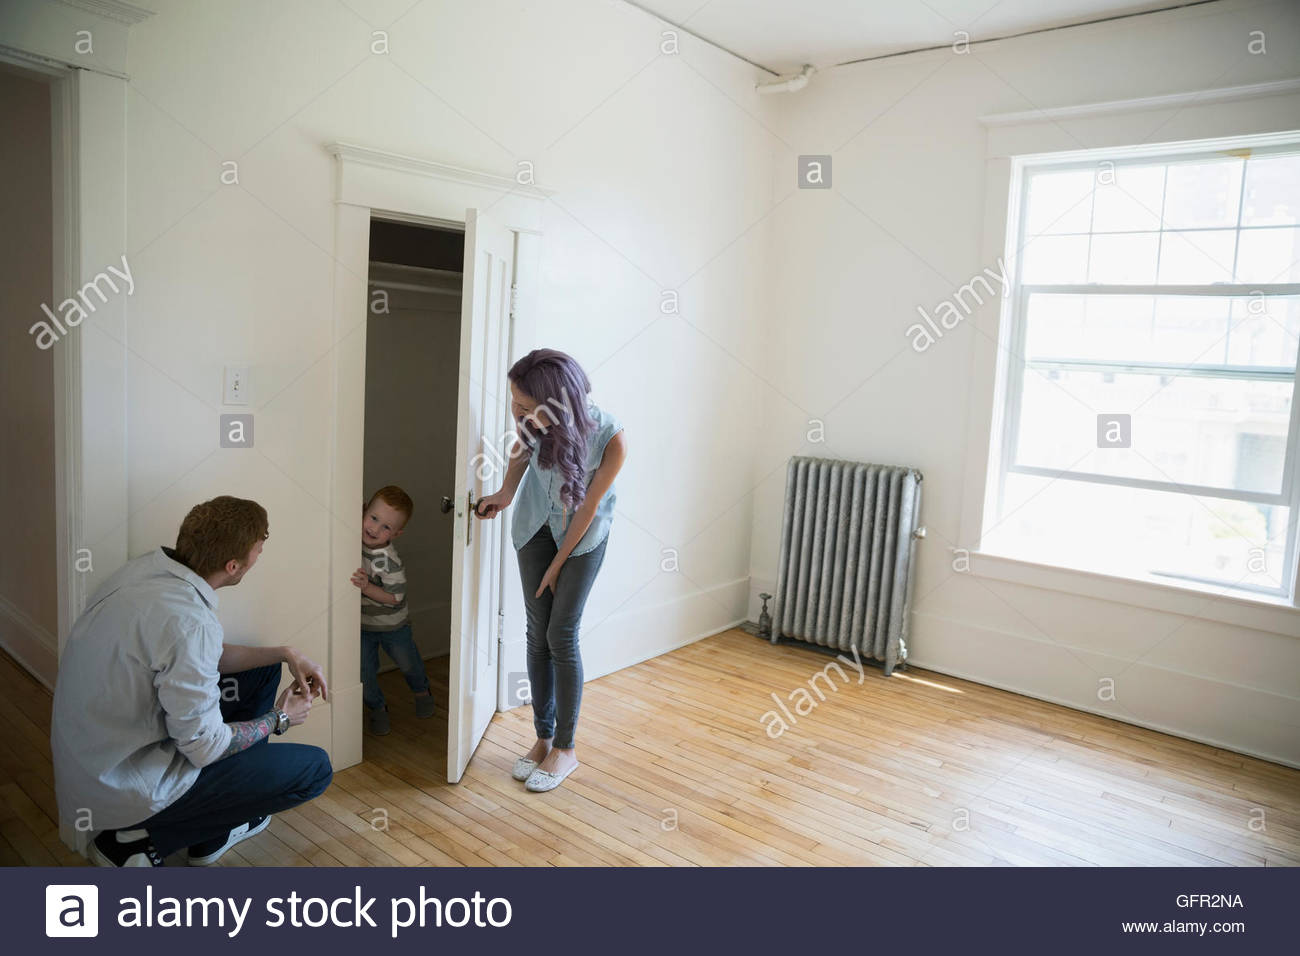 Playful young family in empty new house - Stock Image